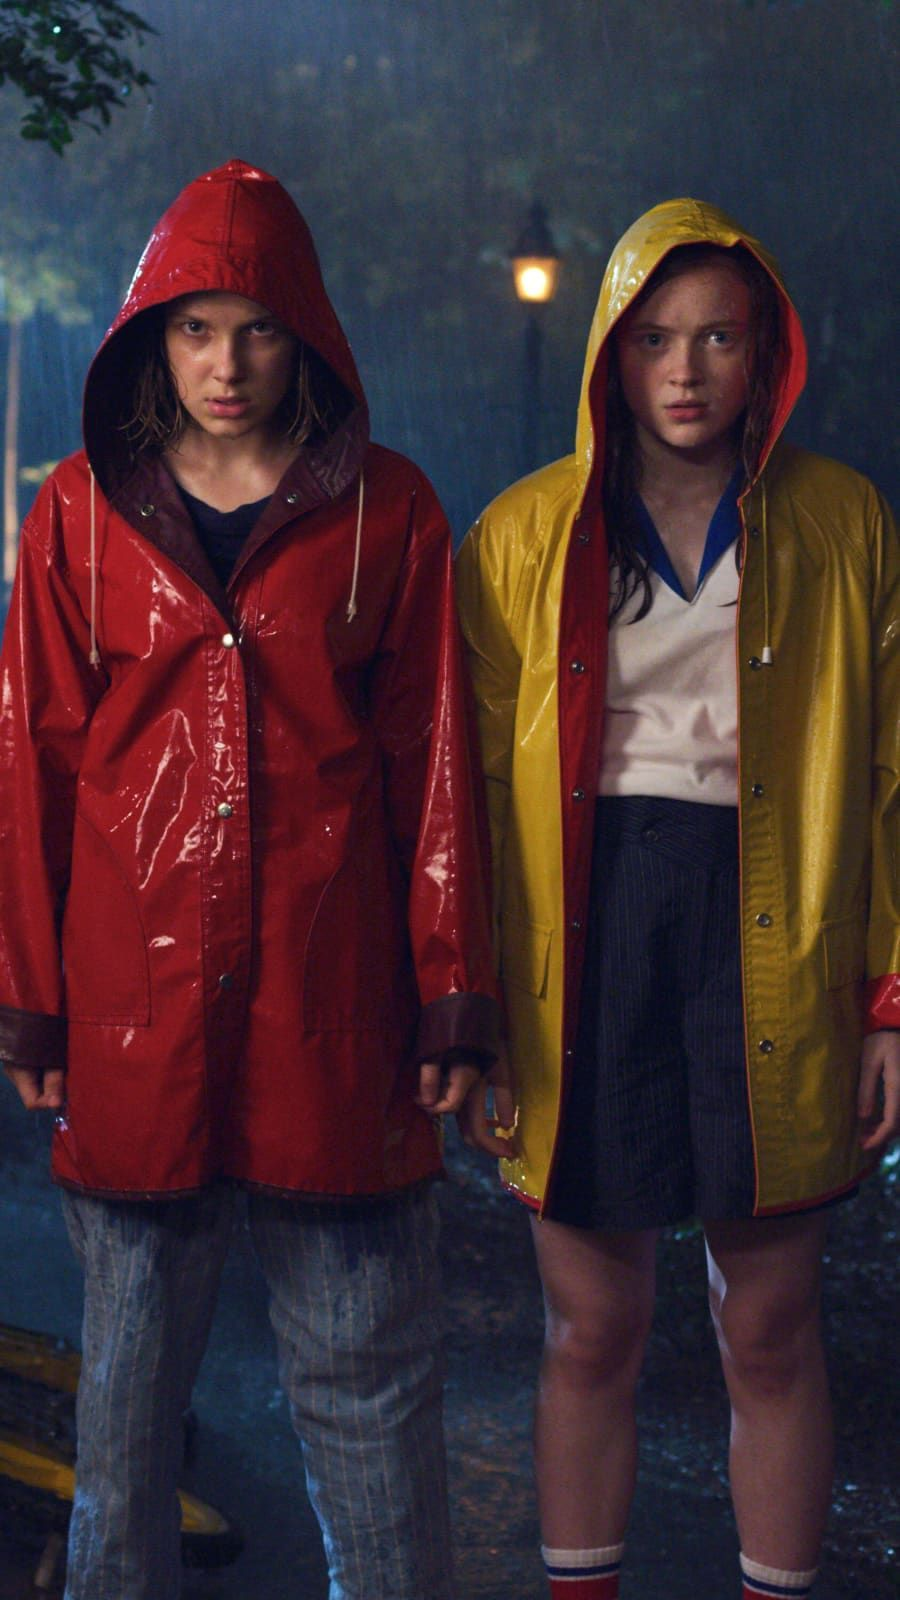 Is Netflix Preparing To End 'Stranger Things' With A Movie?